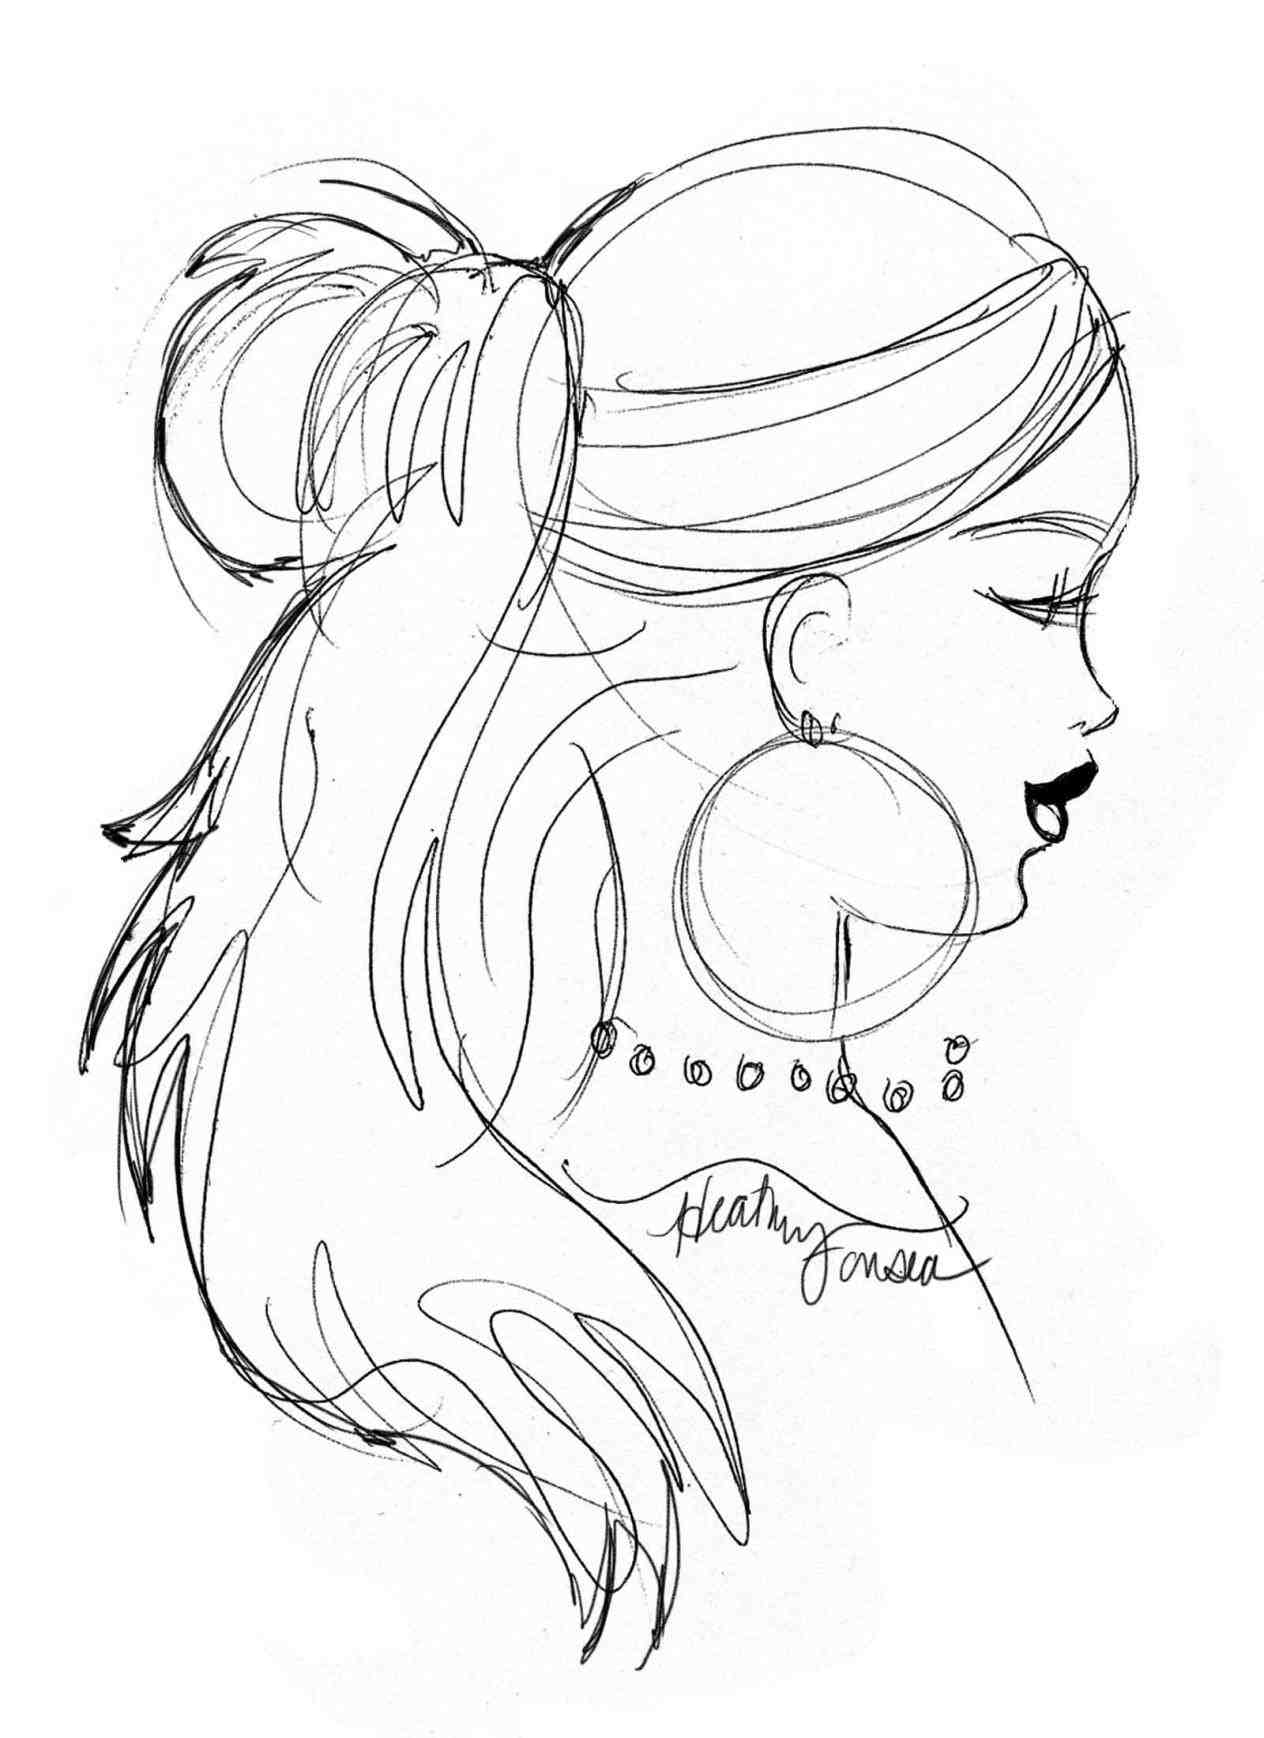 1264x1738 Hairstyle Fashion Hairstyle Sketches Sketches From Lucky Fabb